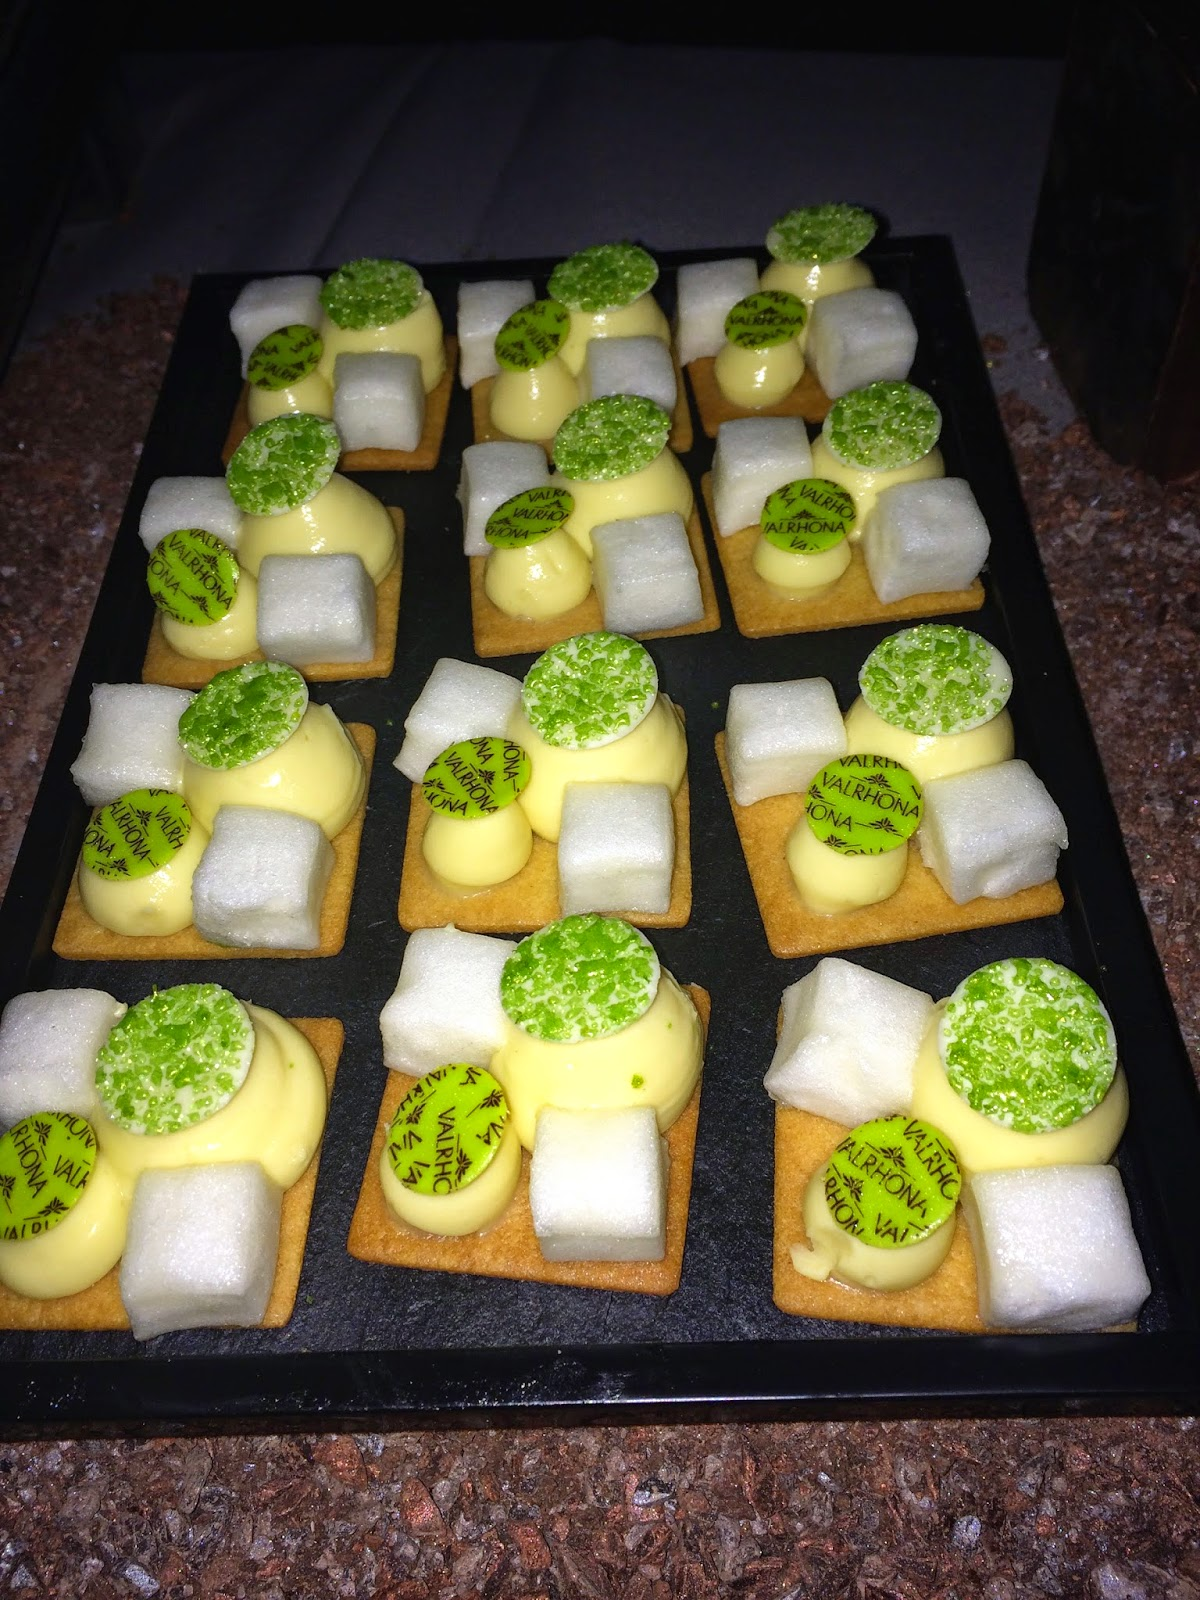 Key lime pie at Valrhona party